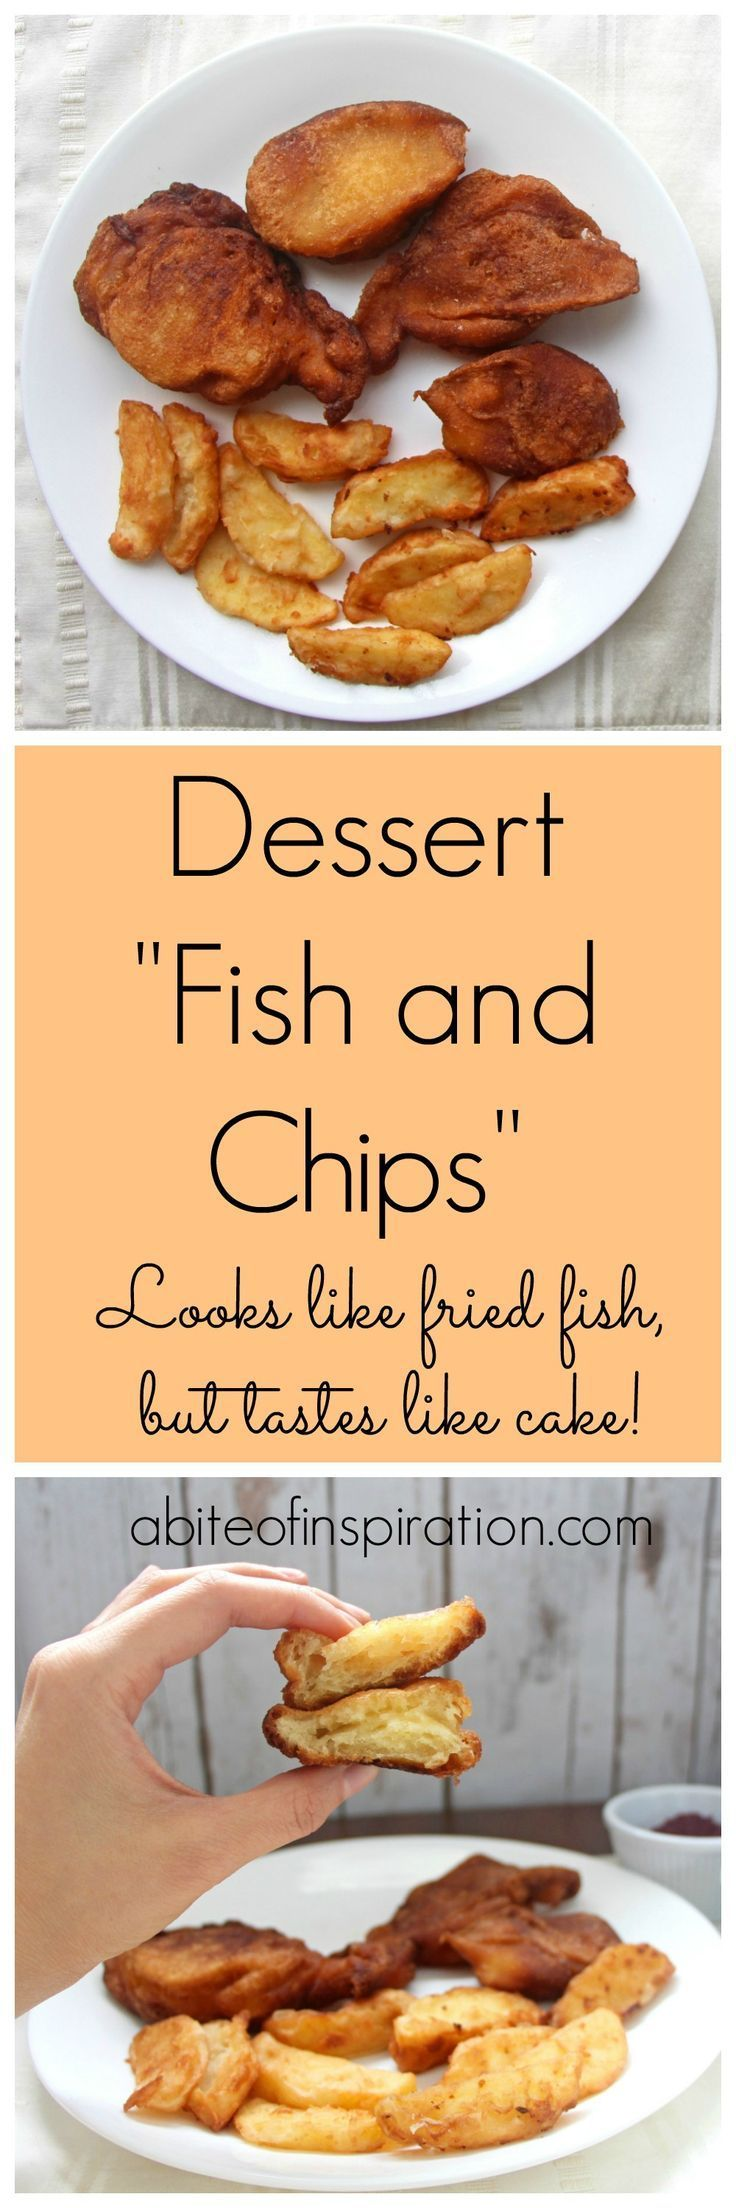 How to make april fools day chocolate bunny filled with veggies - Dessert Fish And Chips April Fools Dayfish